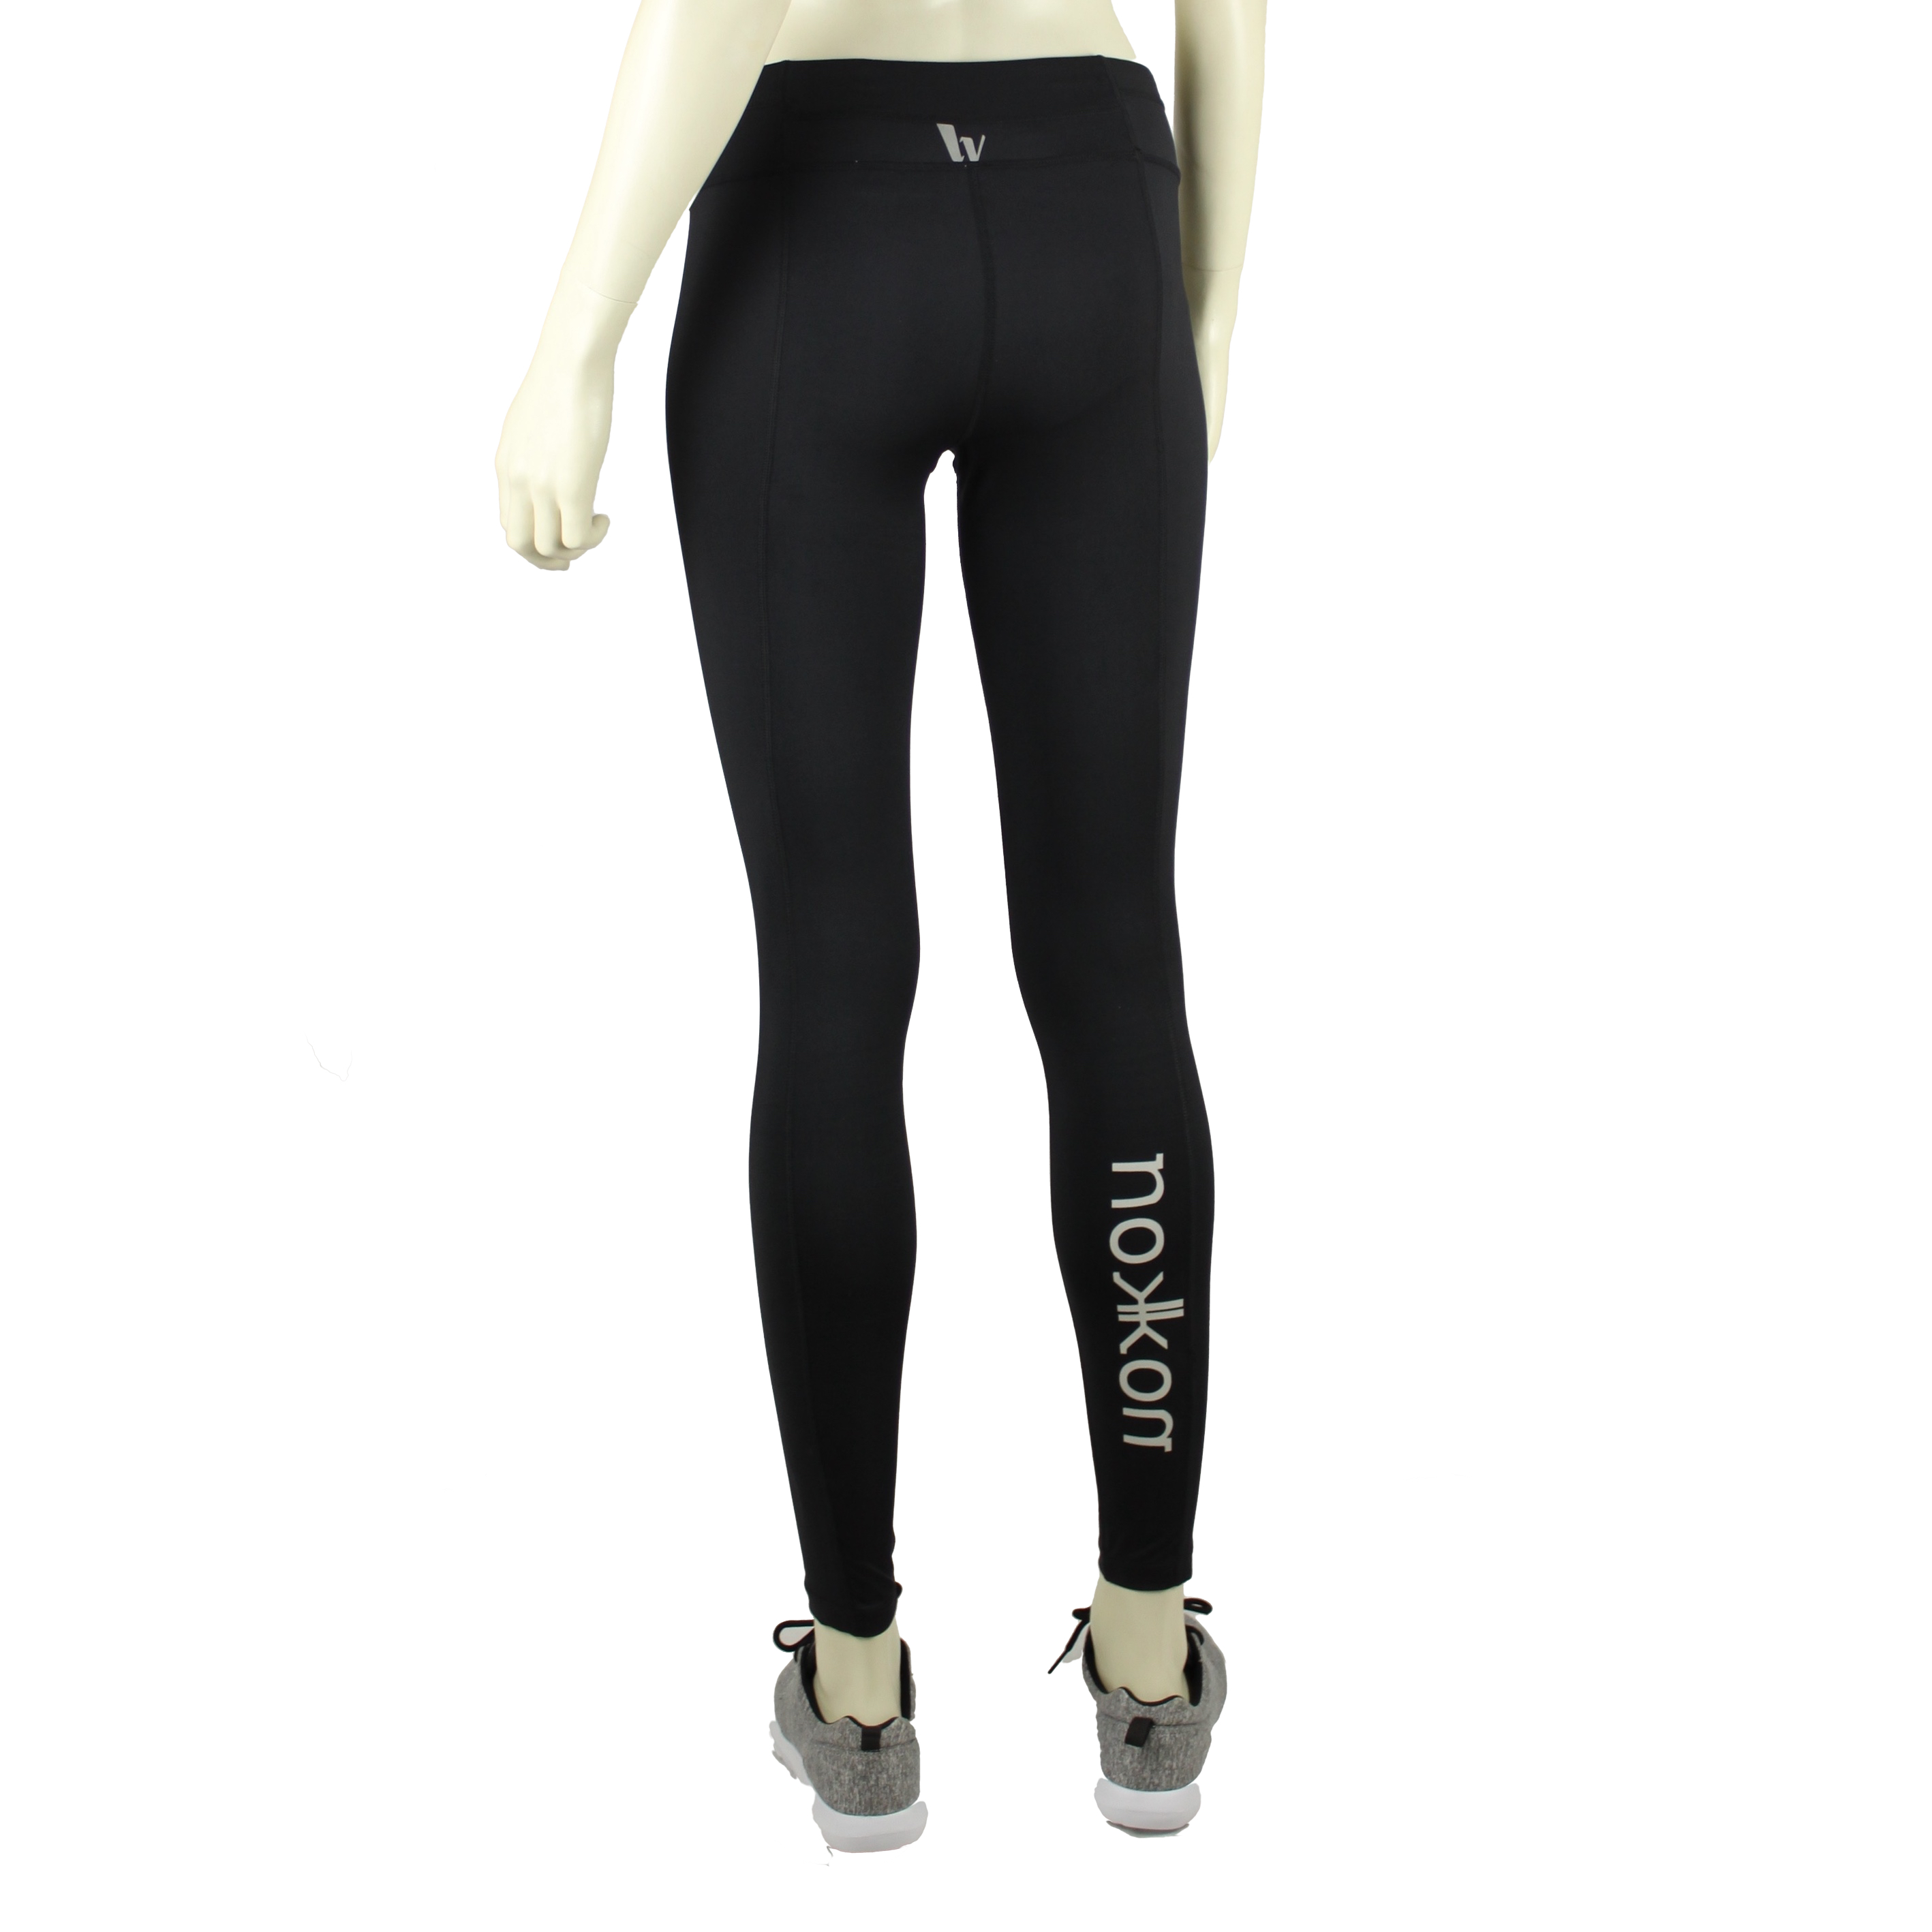 Popular Home Yoga Amp Sports Clothing Women Yoga Compression Pants